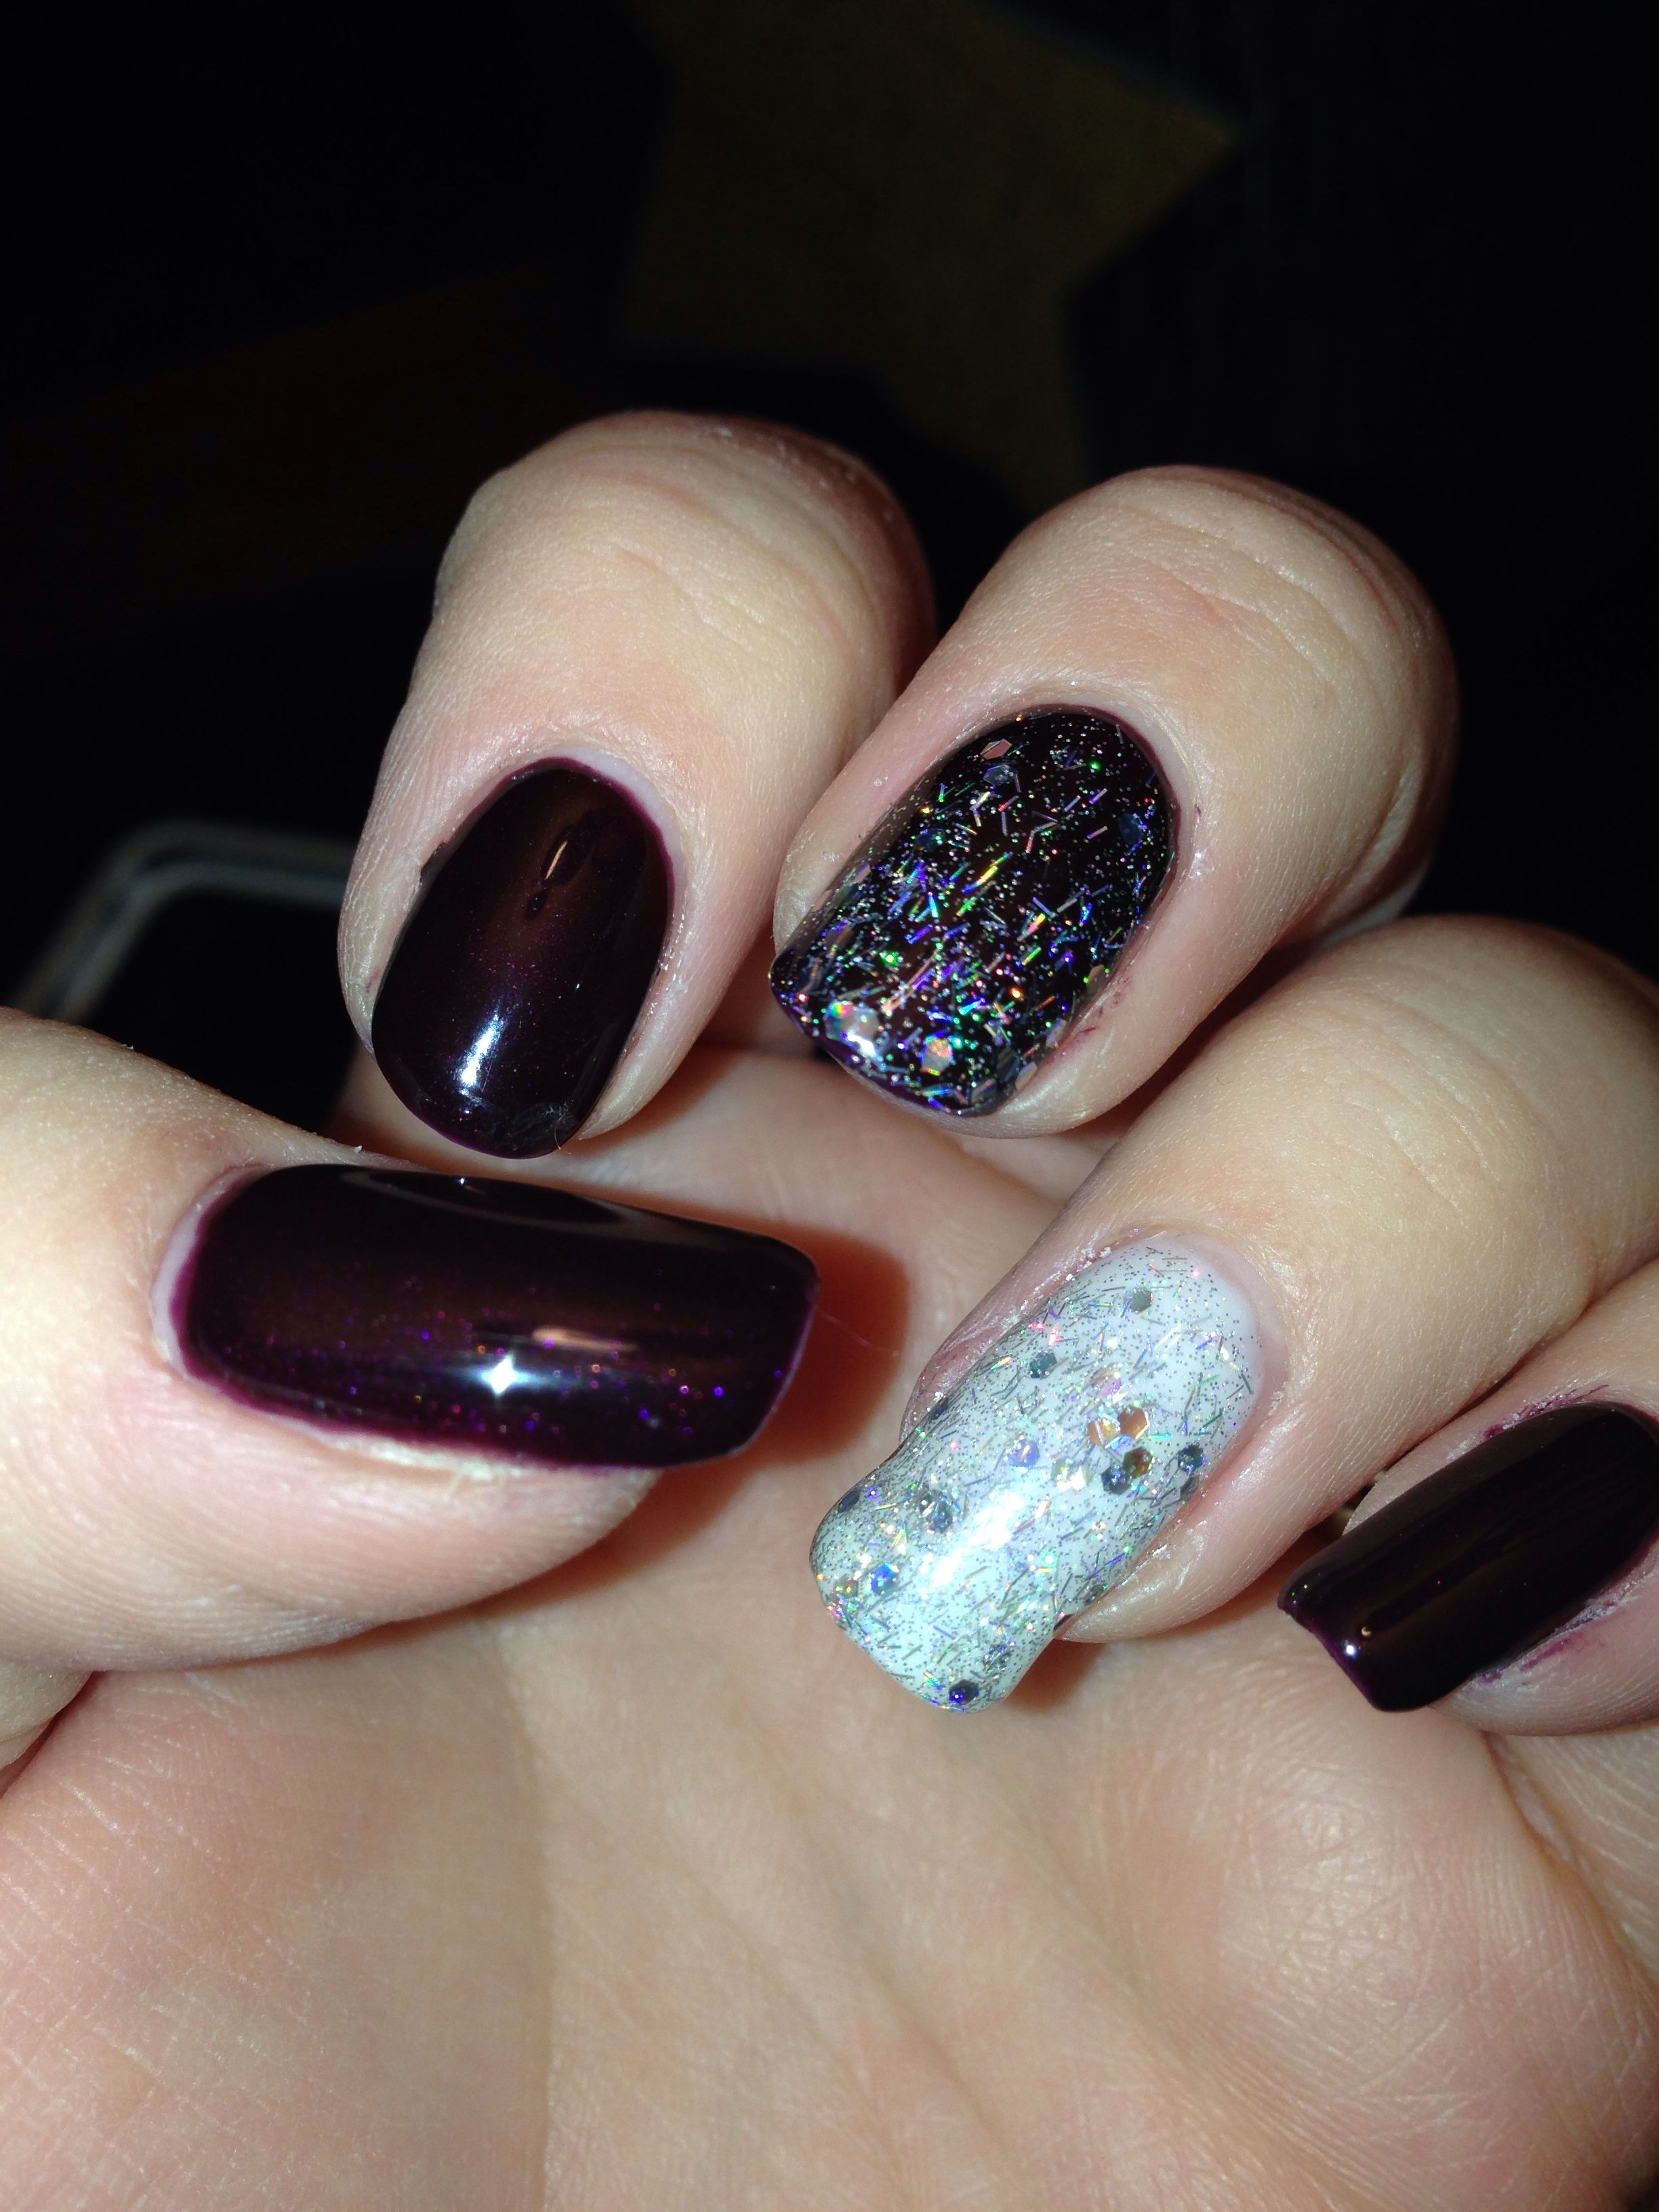 Dark cherry nails with glitter | Nails I\'ve painted | Pinterest ...